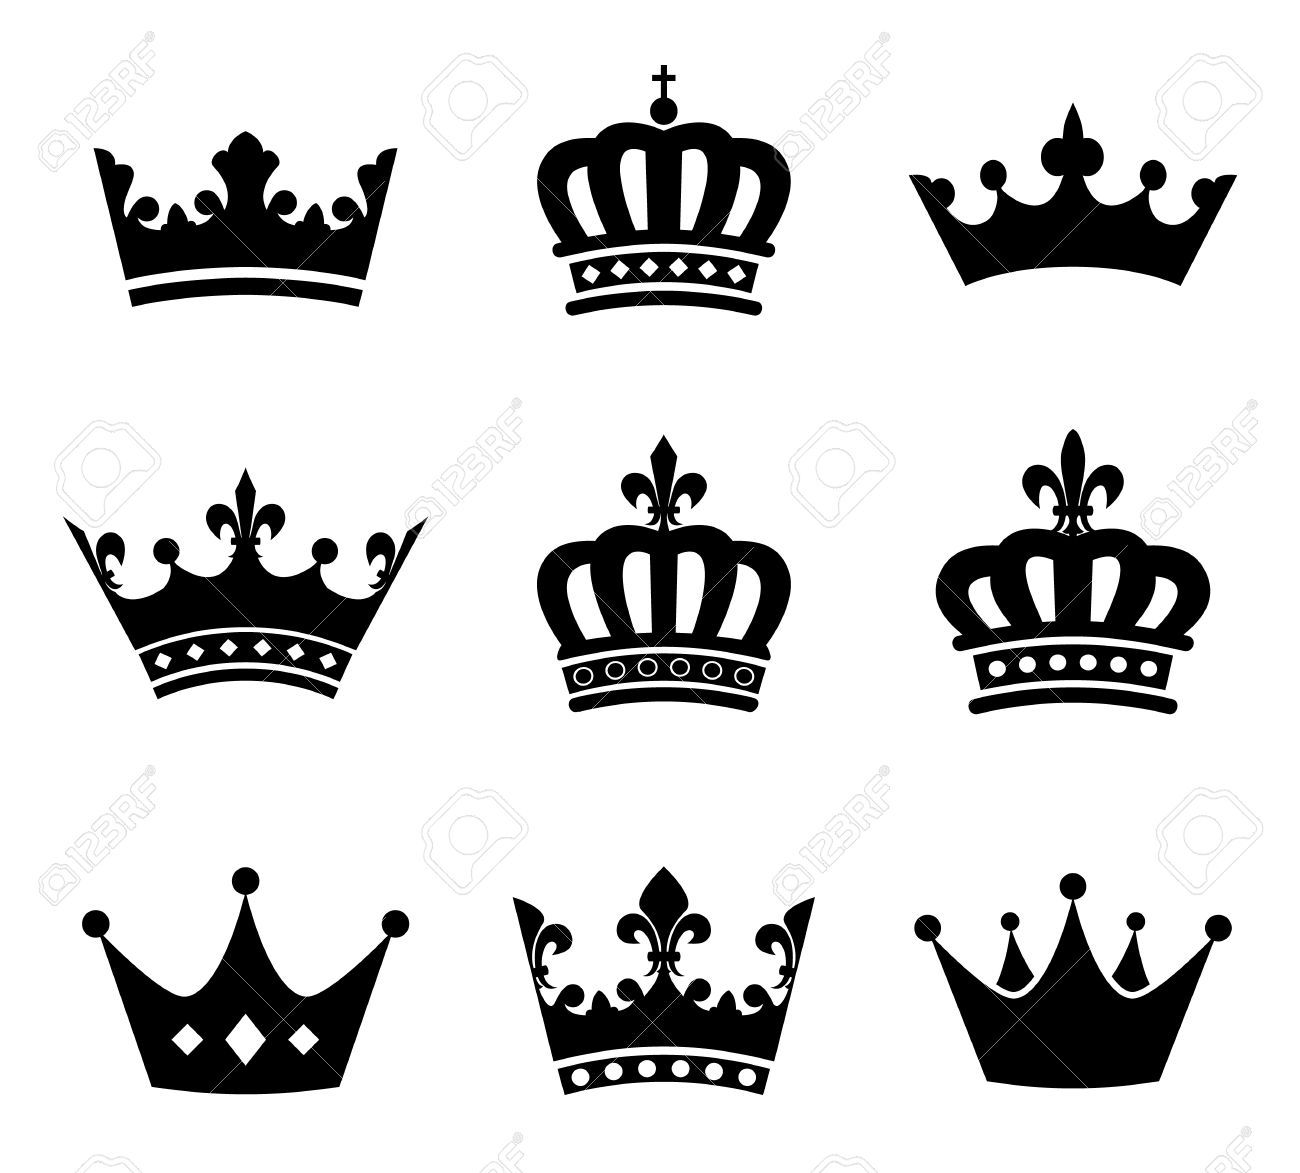 Heraldic Crown Stock Illustrations Cliparts And Royalty Free